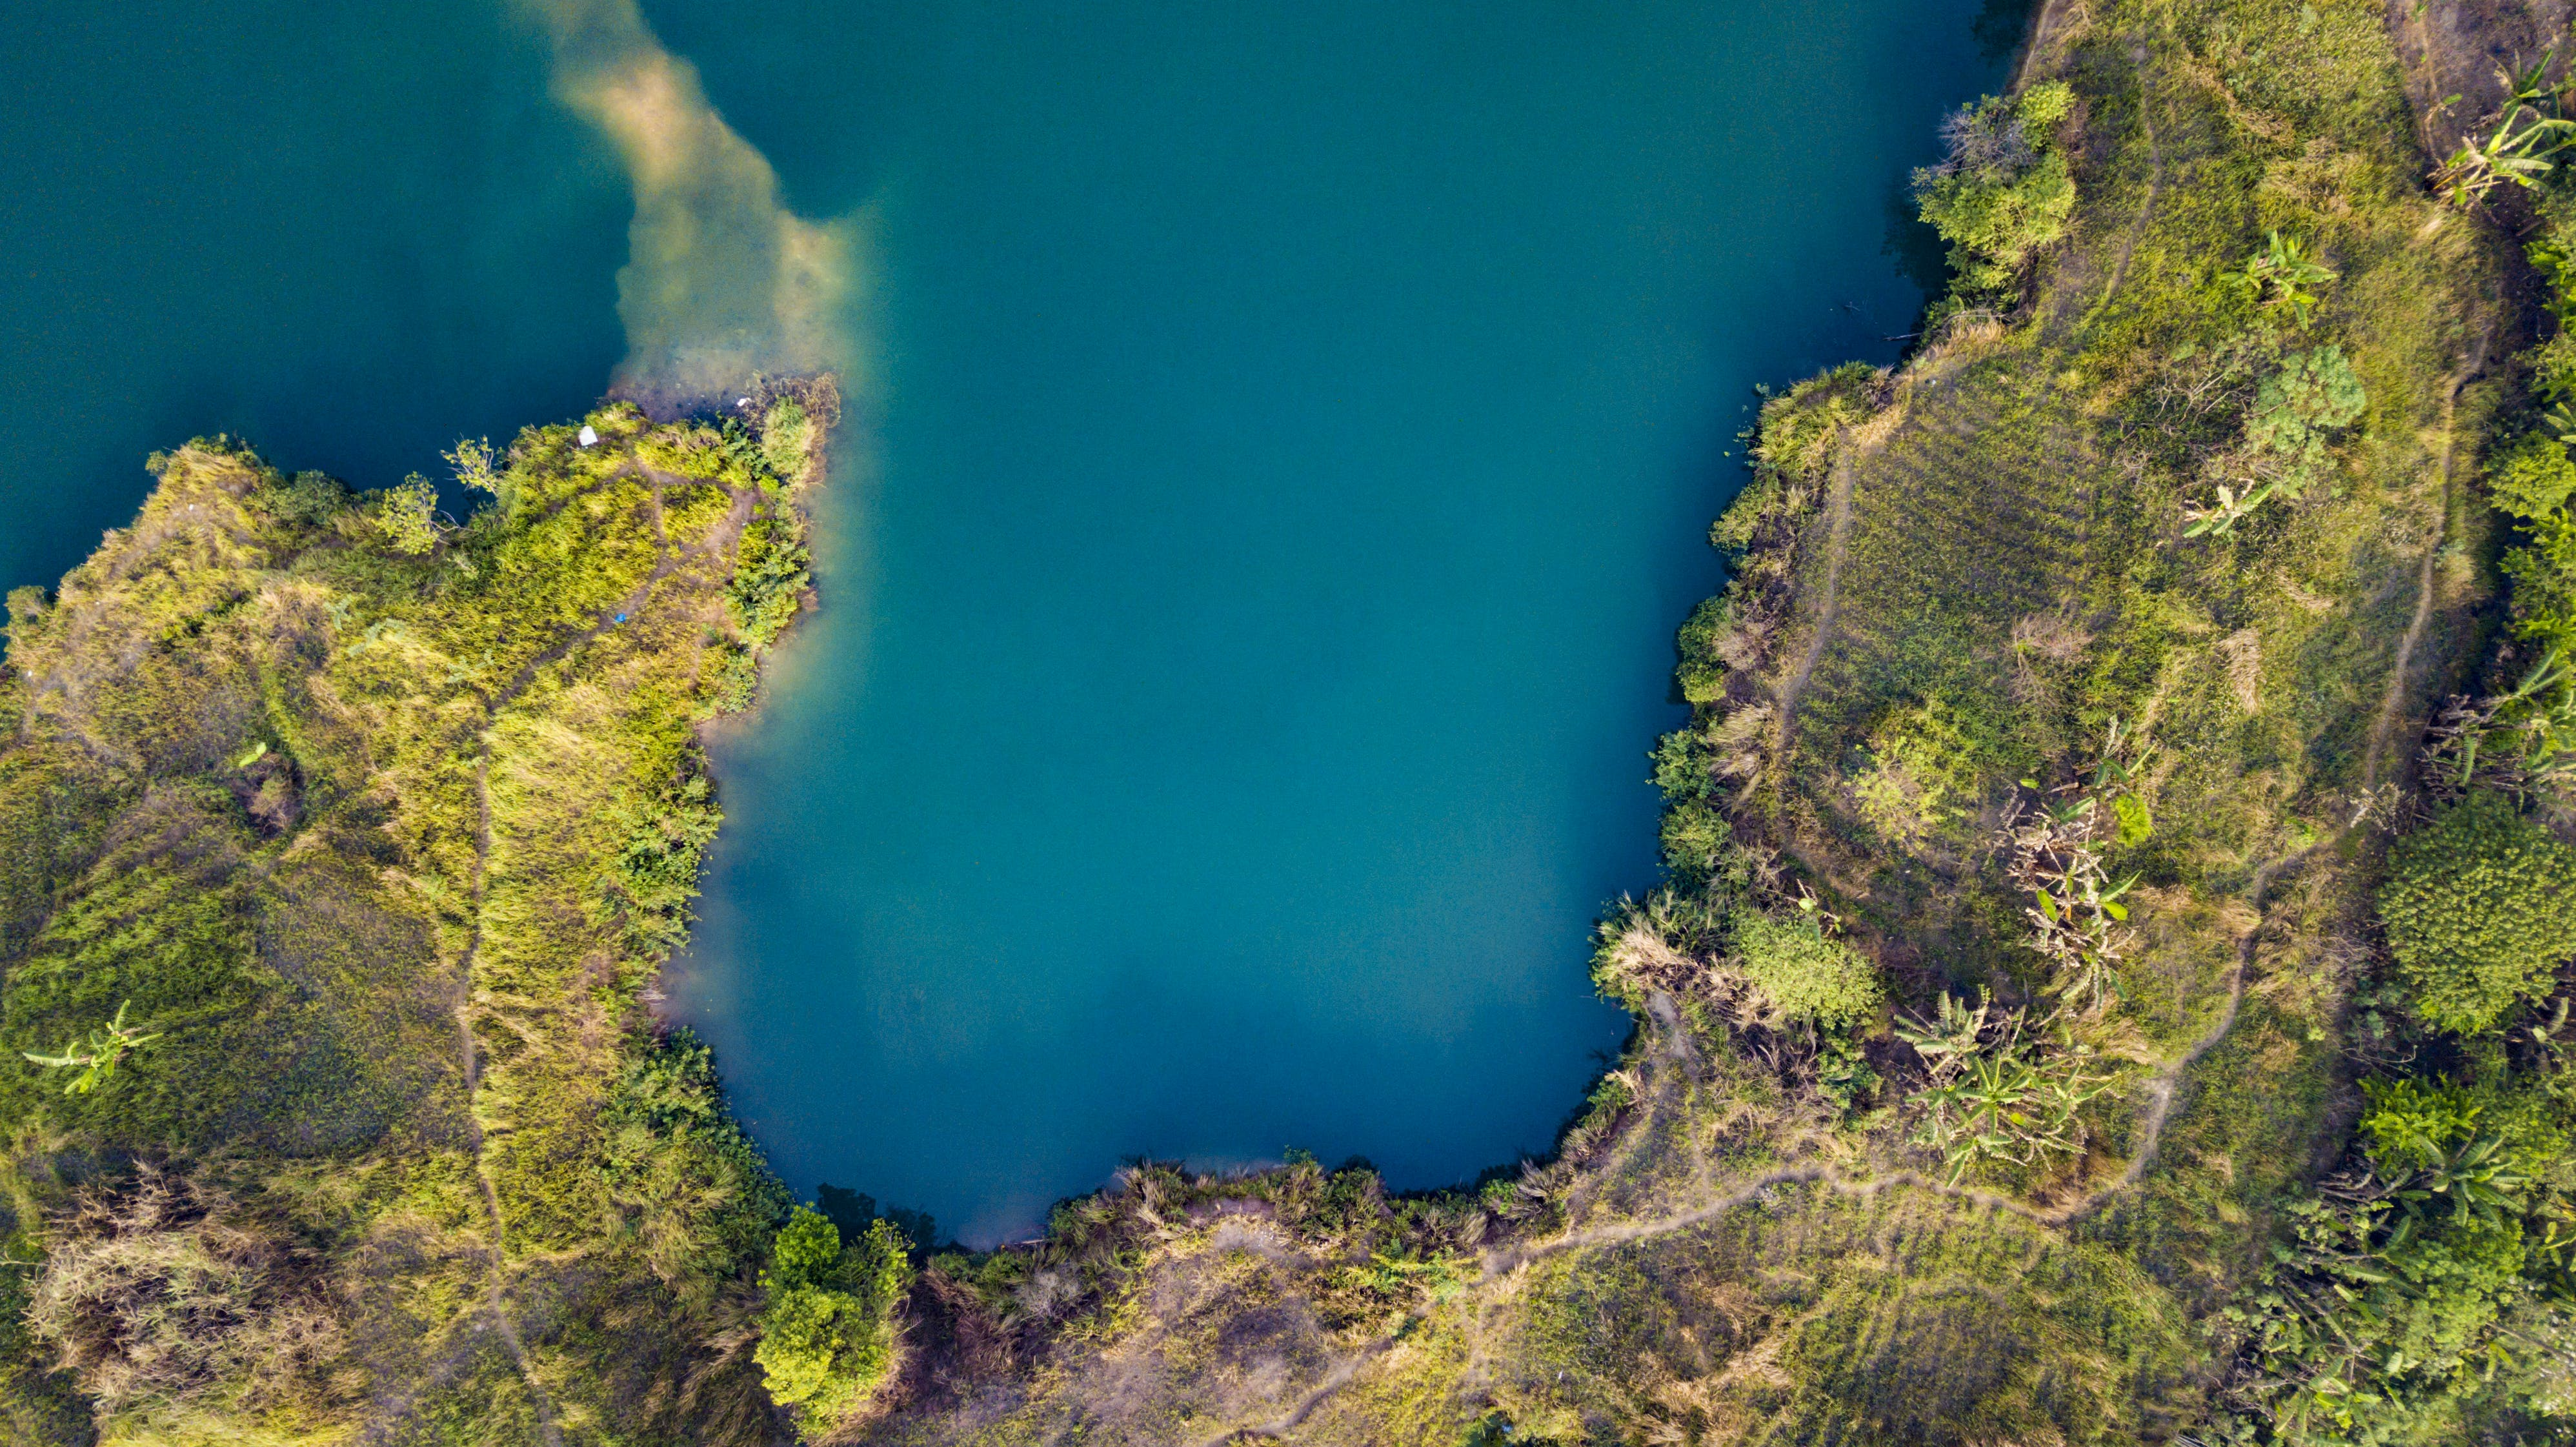 Aerial View of Land and Body of Water